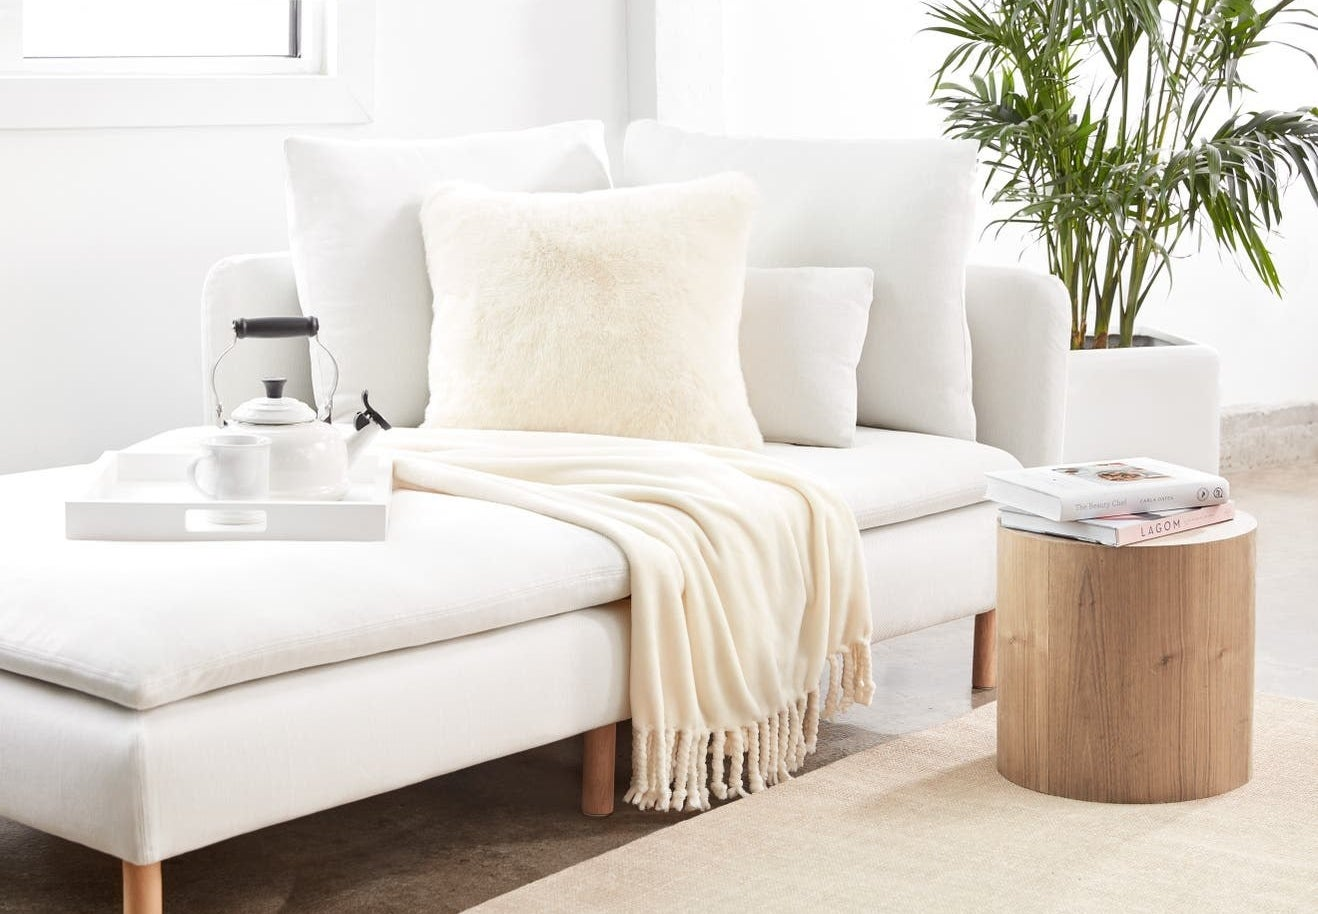 Cream plush blanket on a white couch